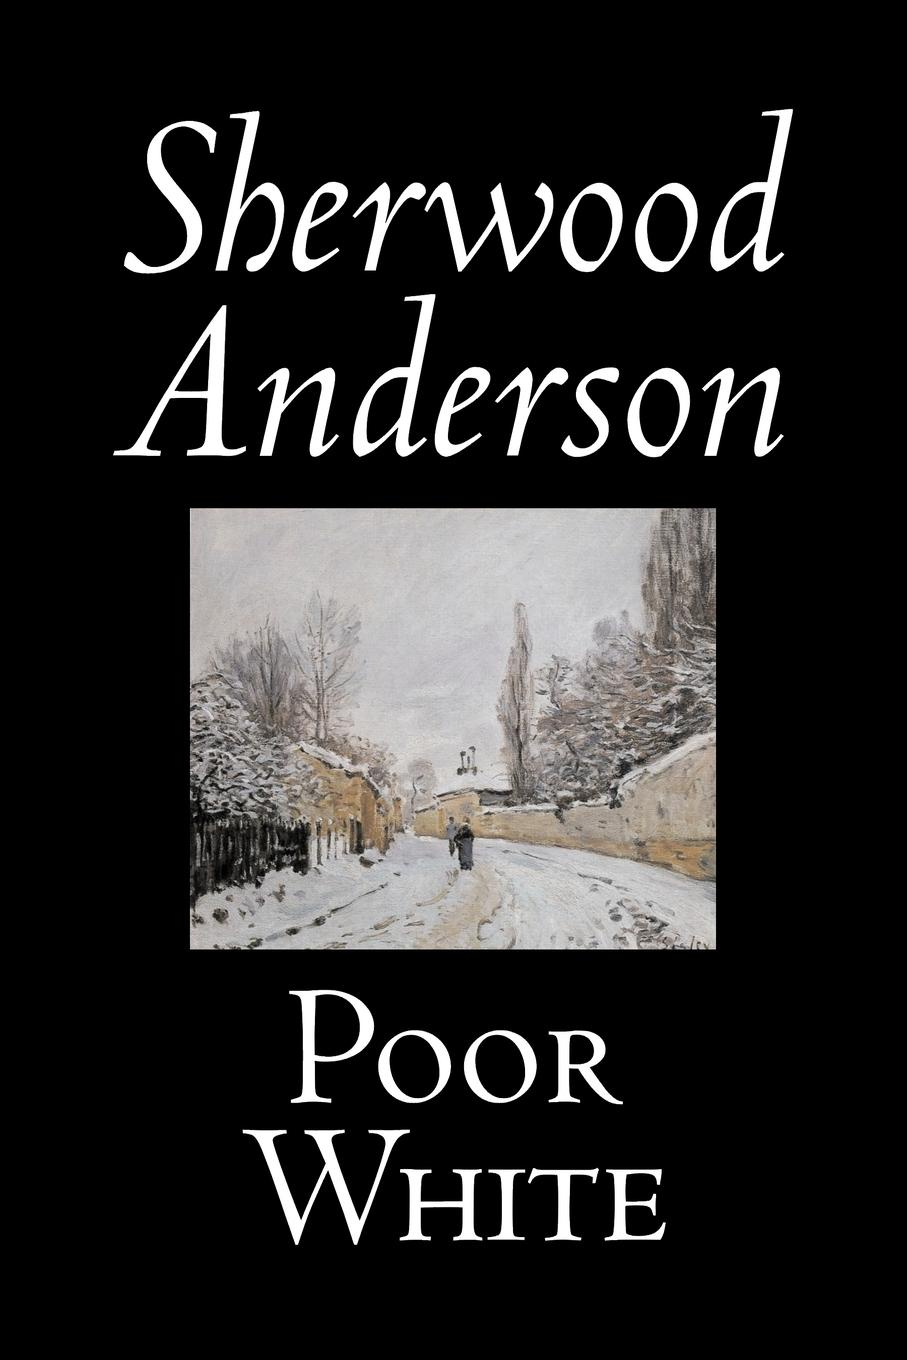 Sherwood Anderson Poor White by Sherwood Anderson, Fiction, Classics, Historical, Literary